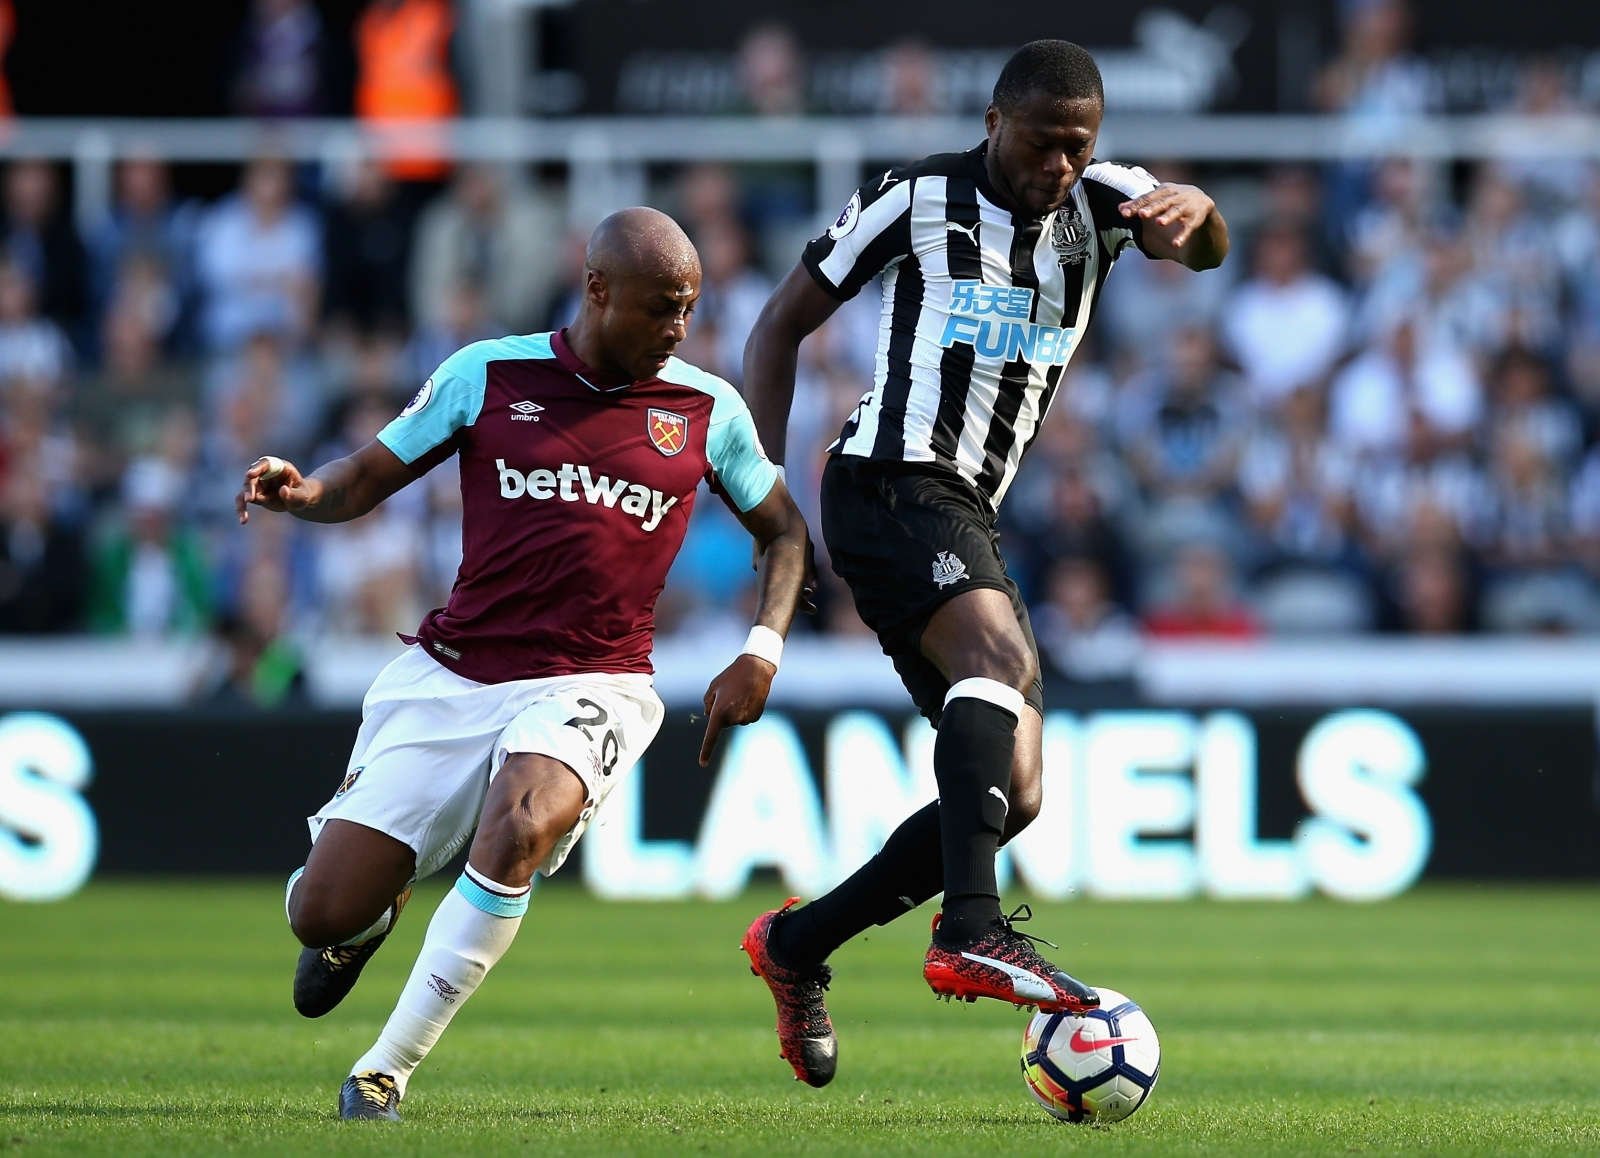 Chancel Mbemba Injured During International Break